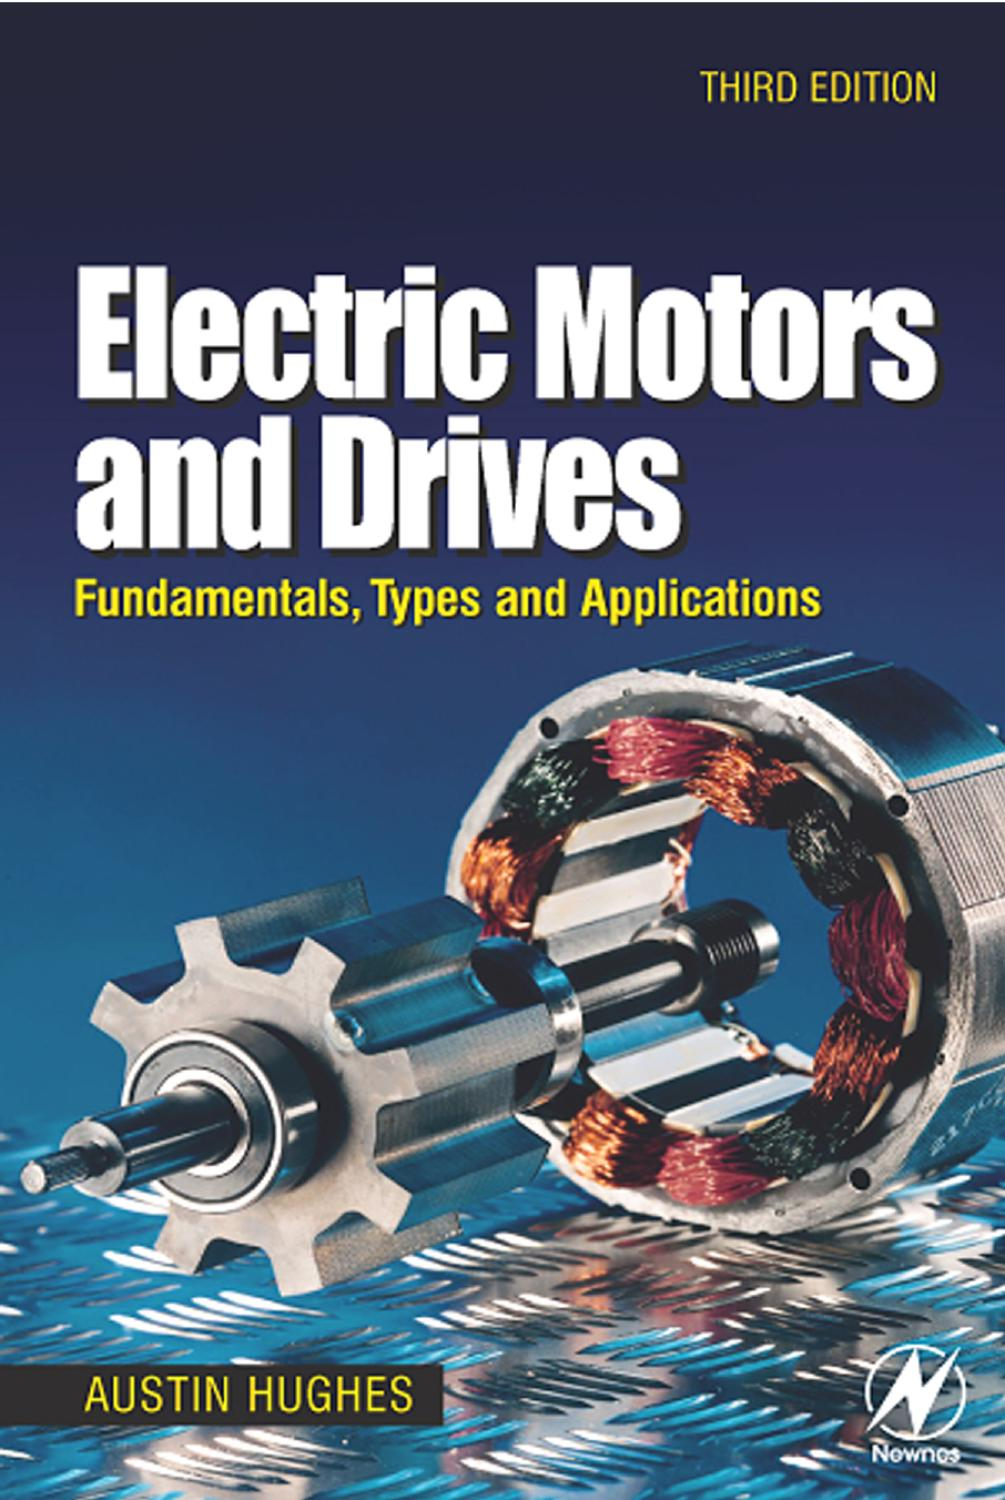 Electric motors and drives by unknownnoone issuu for Electric motors and drives